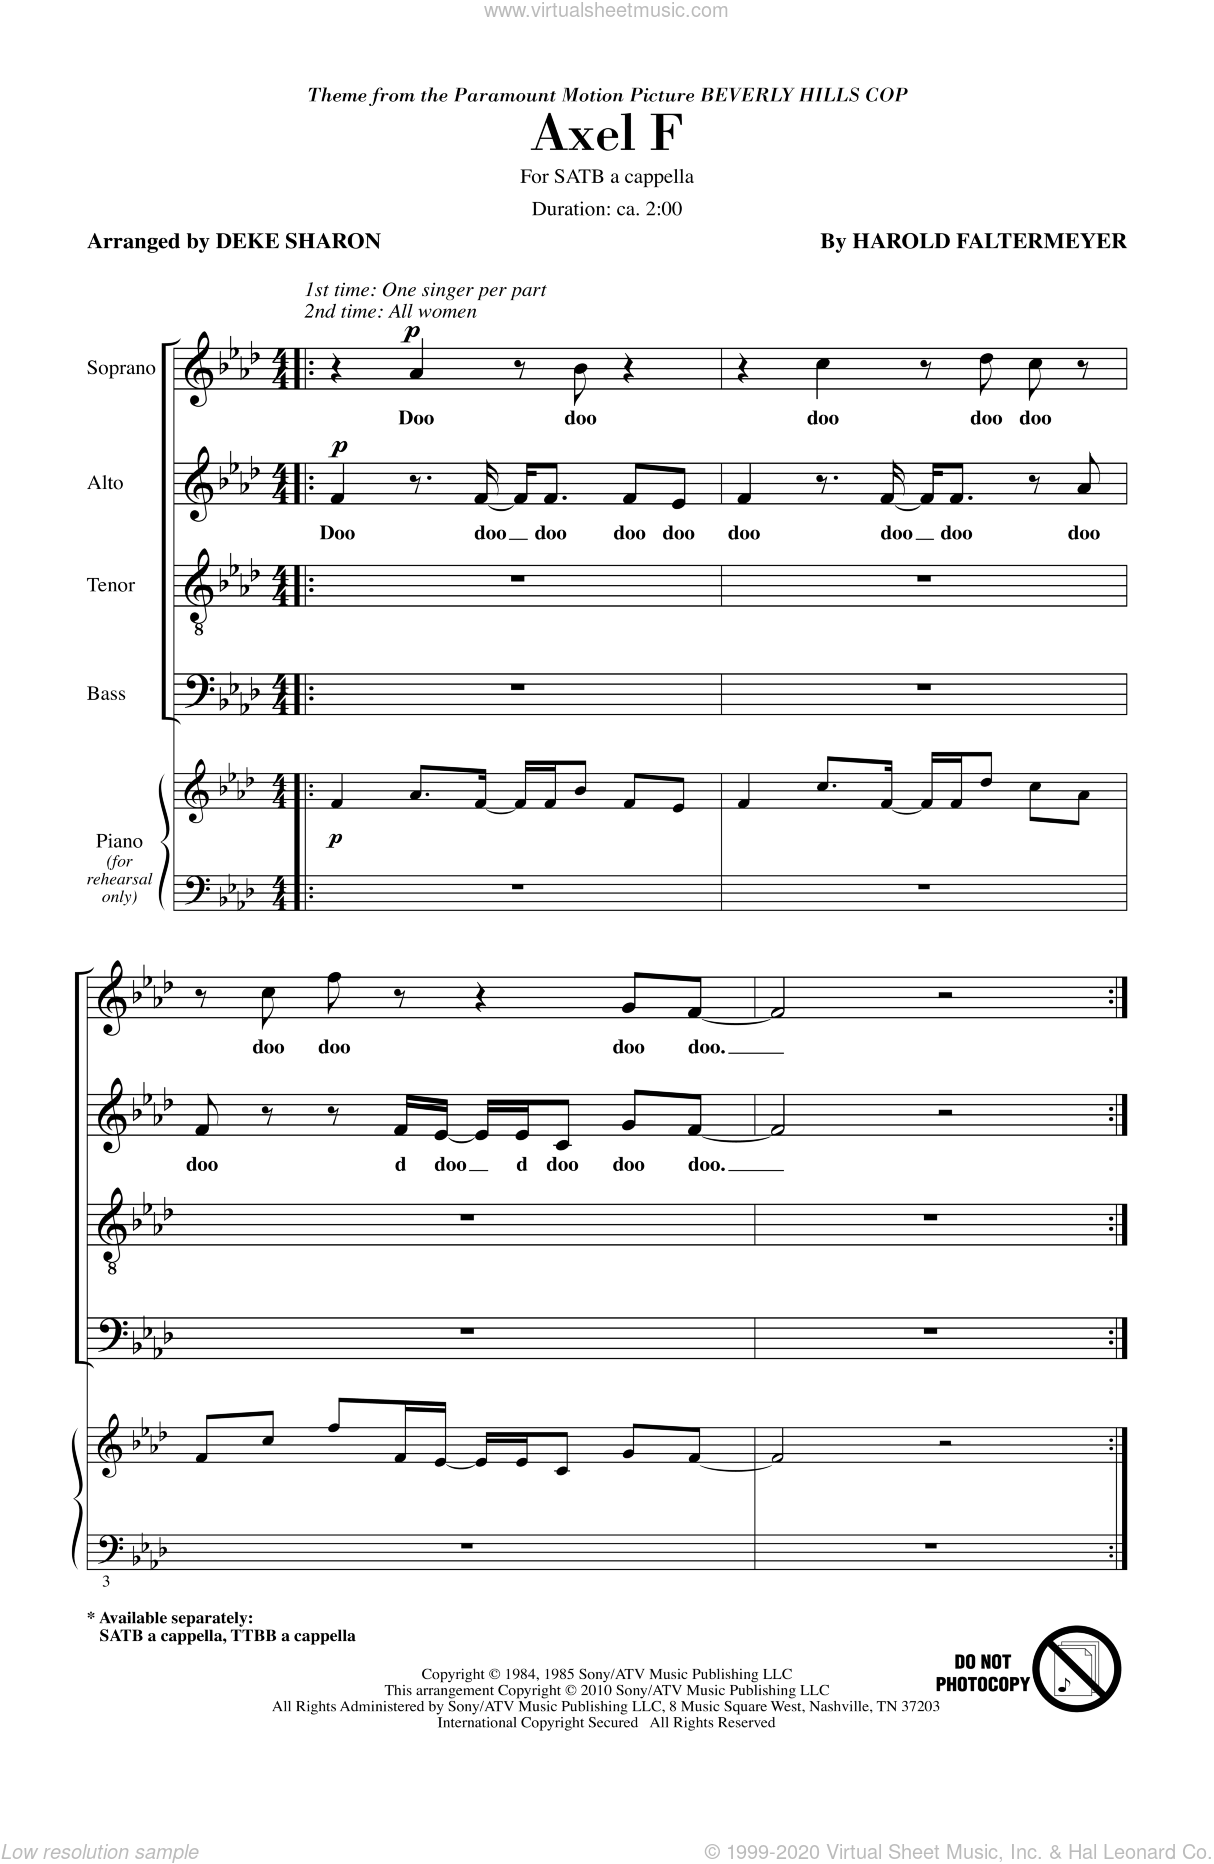 Axel F sheet music for choir and piano (SATB) by Harold Faltermeyer